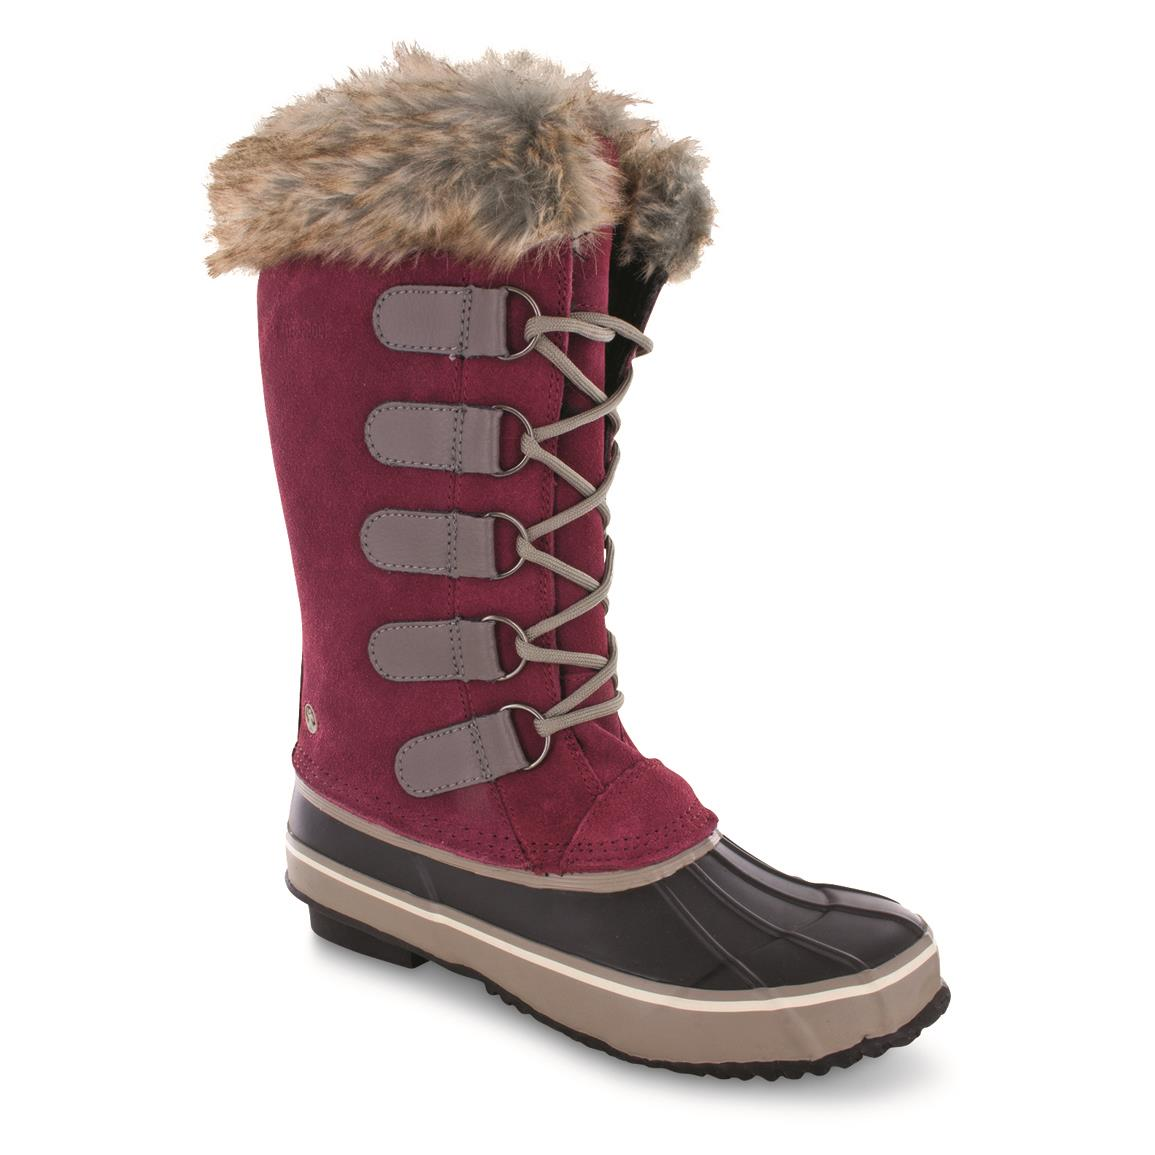 Northside Women's Kathmandu Insulated Waterproof Winter Boots, 200 Grams, Marsala